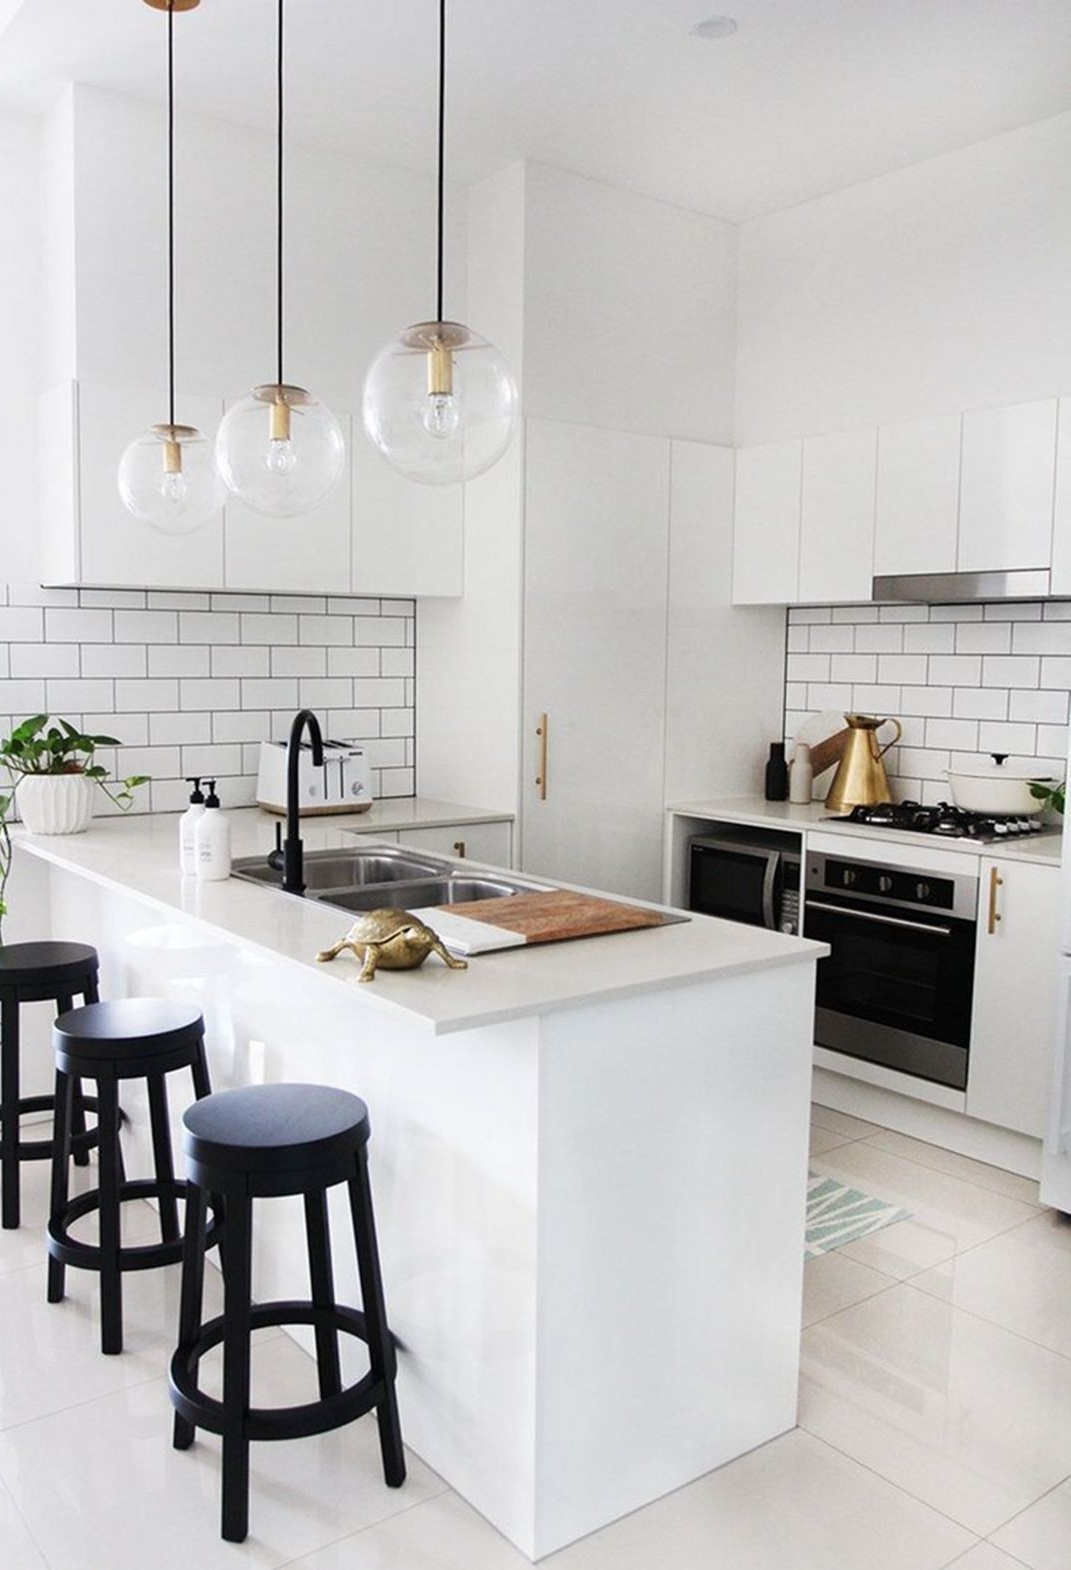 The Minimalist Kitchen